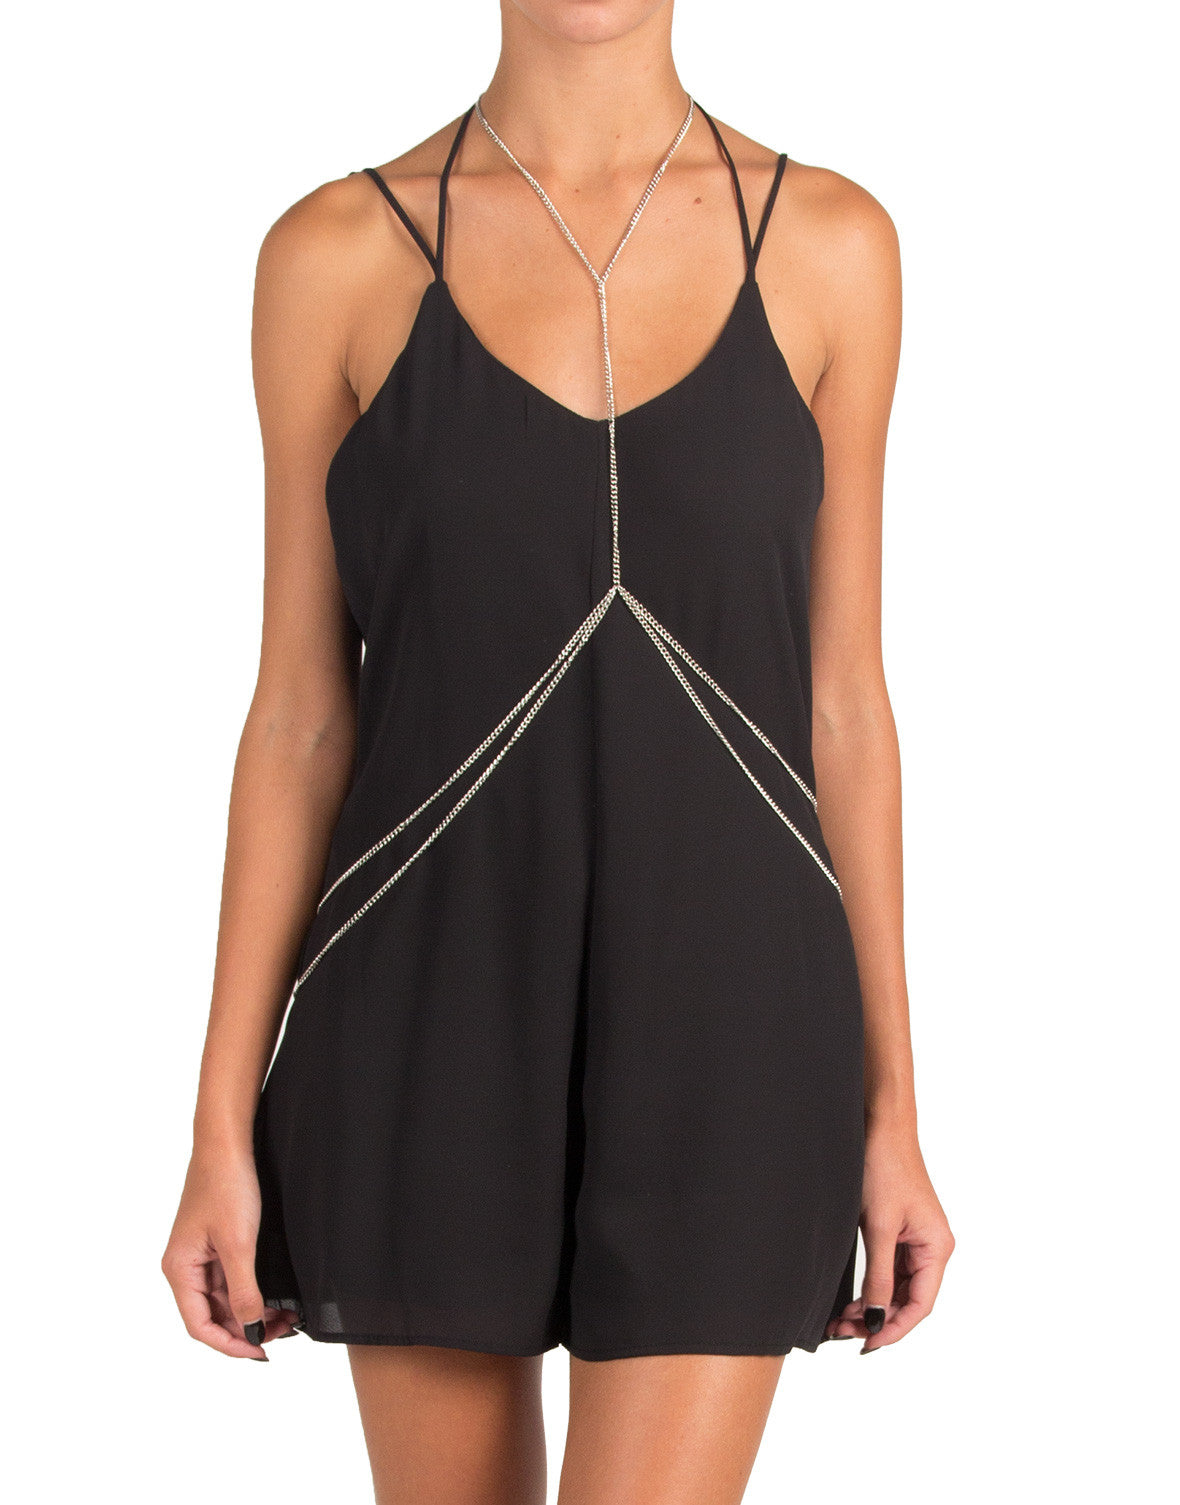 Centered Double Drape Body Chain